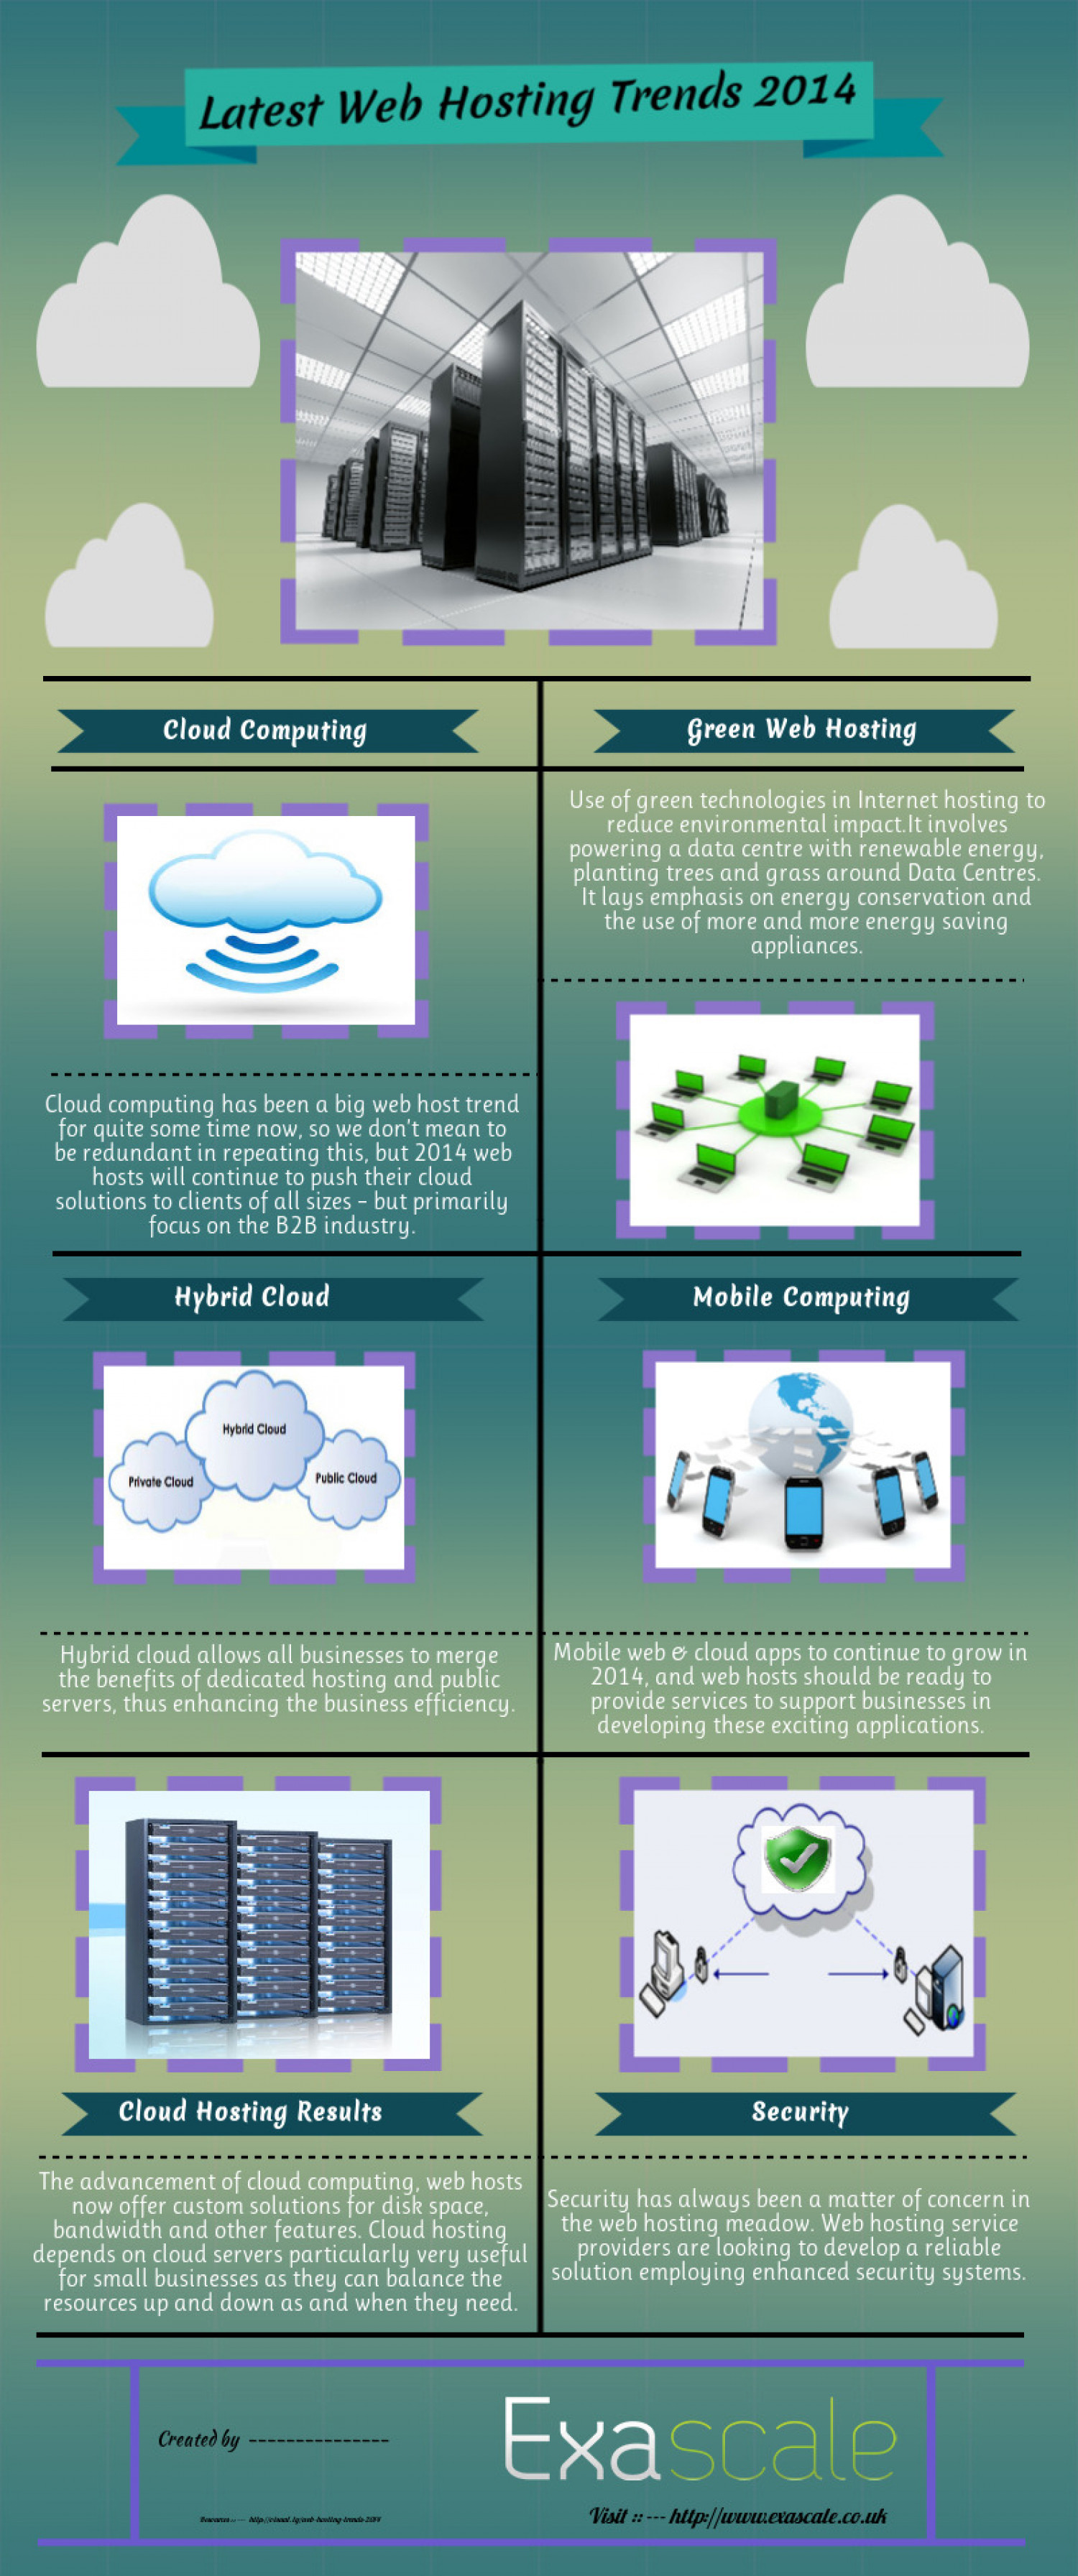 Latest Web Hosting Trend 2014 Infographic